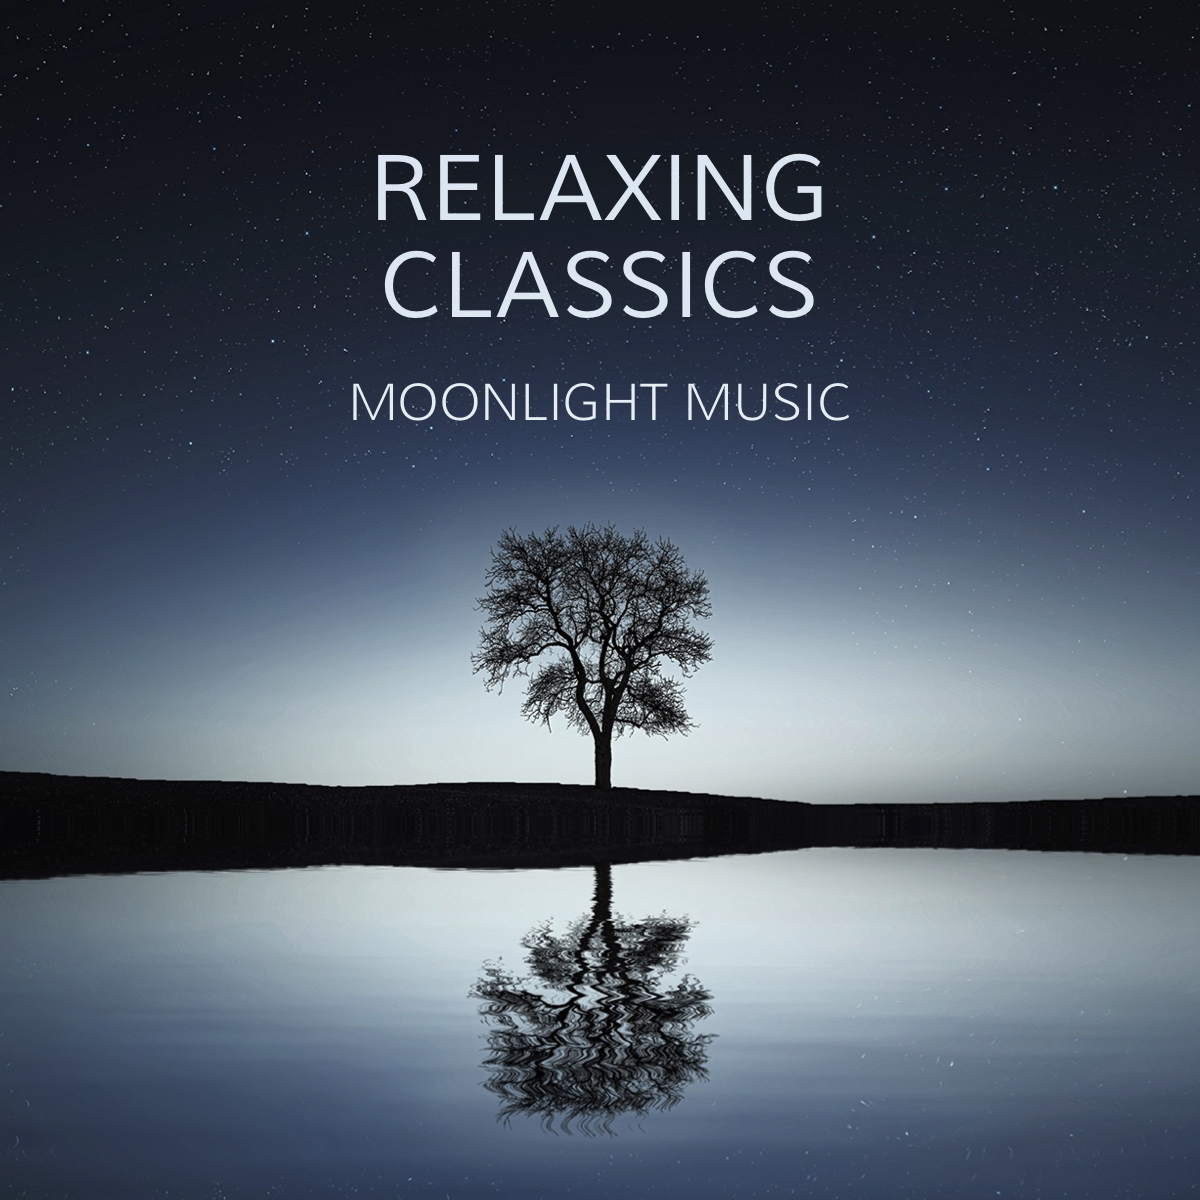 Relaxing Classics: Moonlight Music